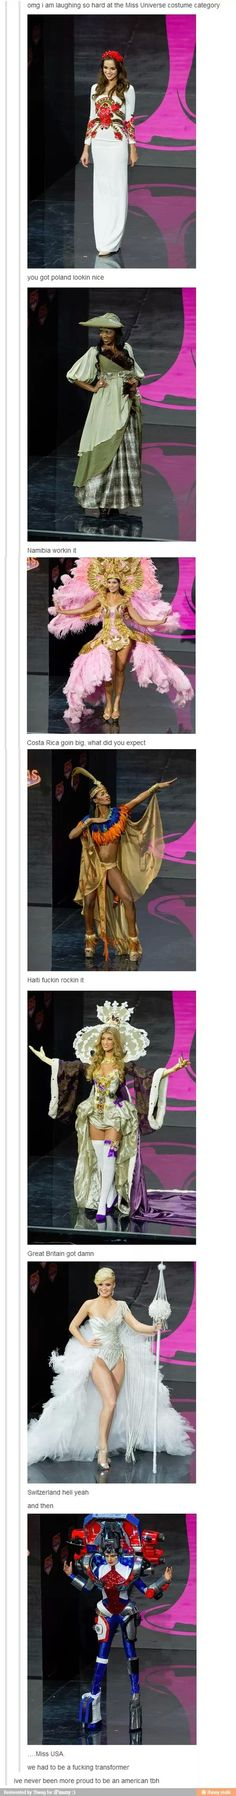 Miss universe costume category